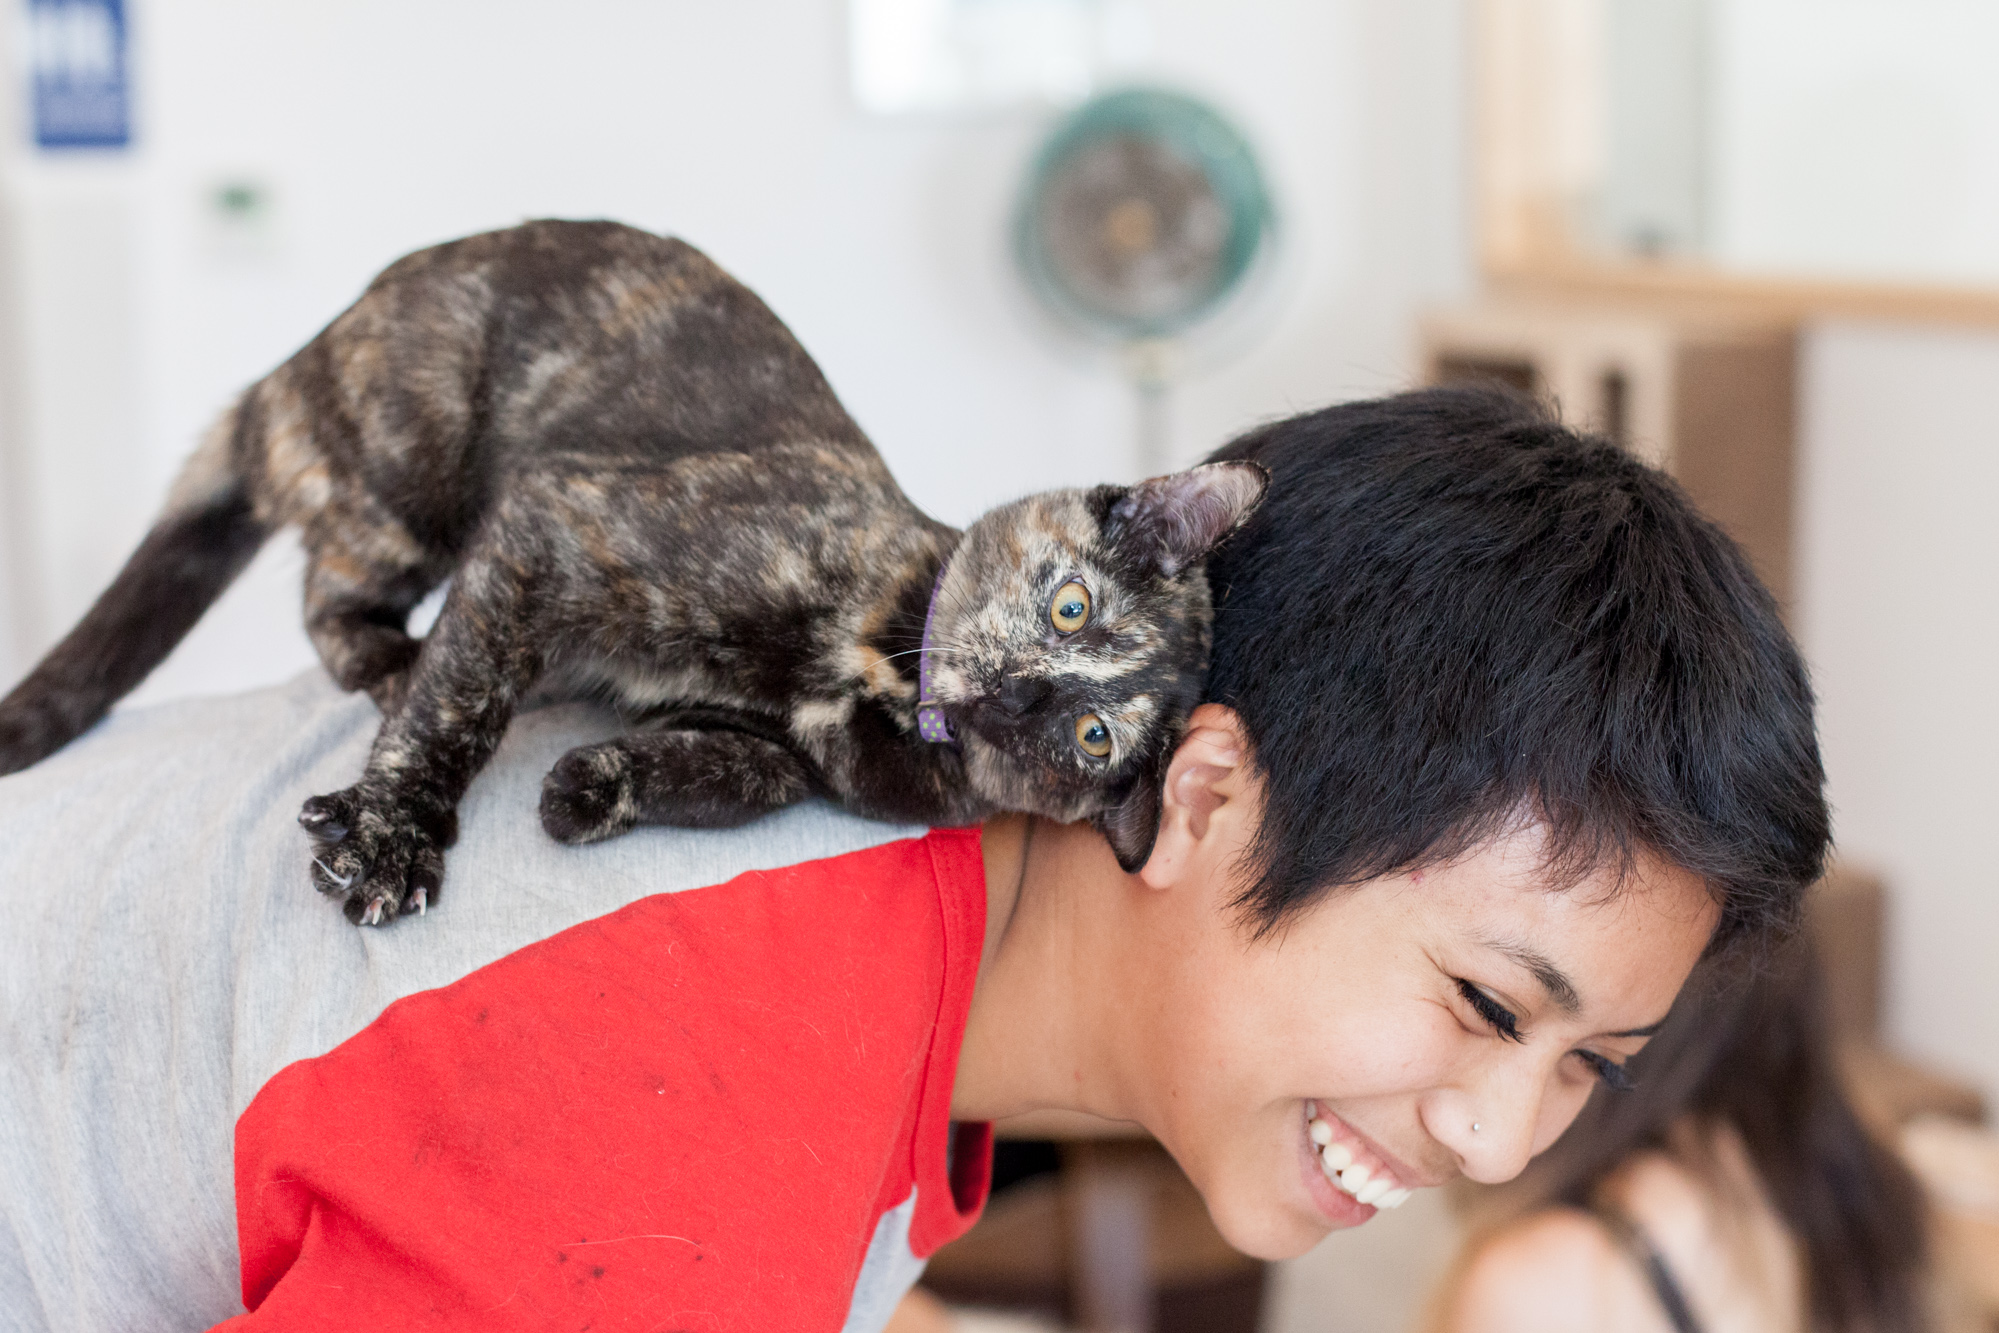 Copy of This is a picture of a tortoise shell cat on person's back. The person is smiling.